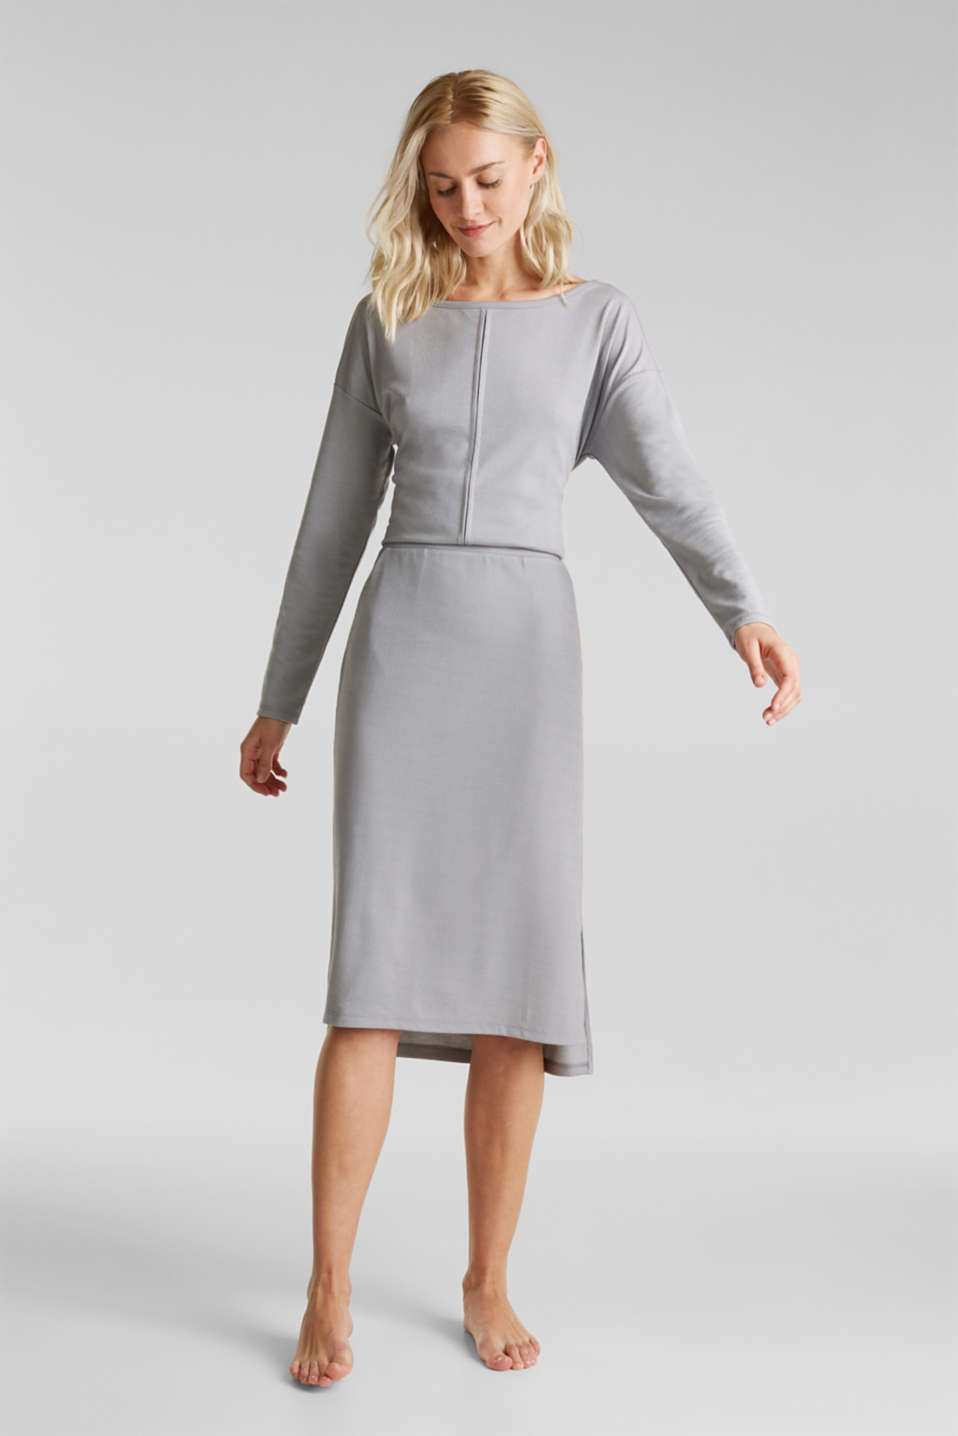 Esprit - Skirt with a ribbed texture and modal/TENCEL™